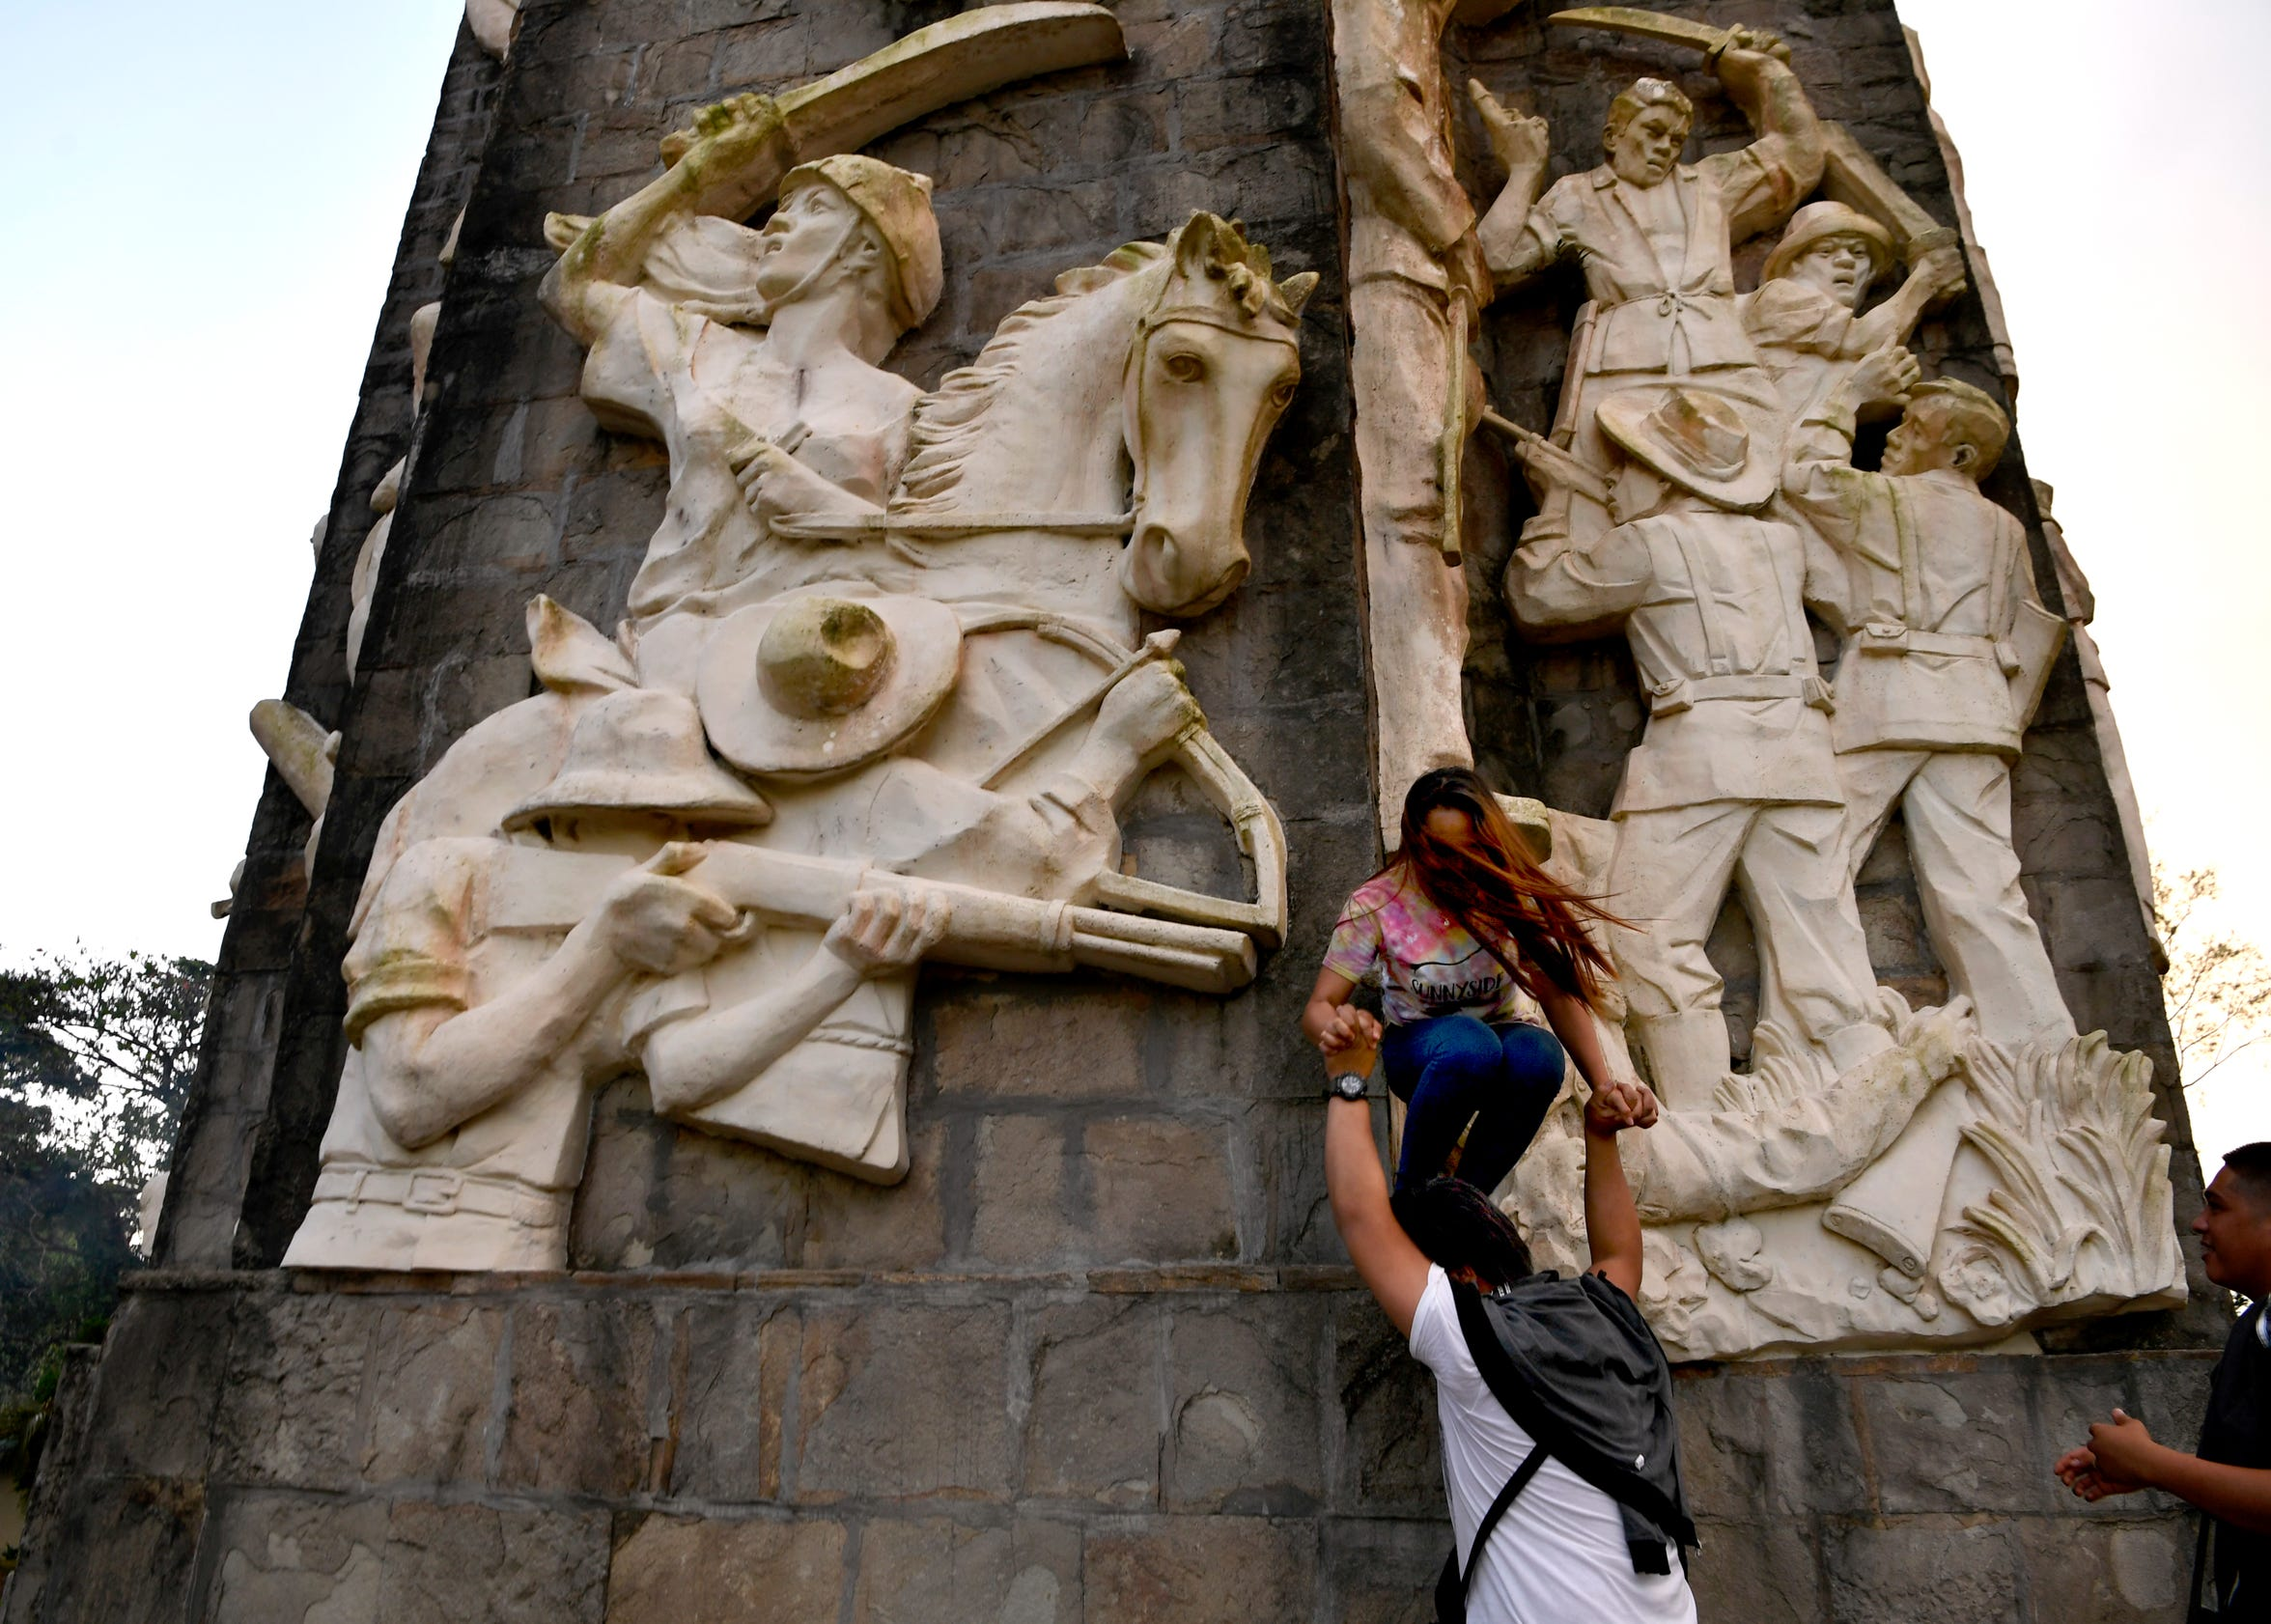 Visitors set themselves up for a picture beneath Mount Samat National Shrine in Pilár, Bataan, Philippines Oct. 20, 2019. The monument, a 311-foot cross, is part of a memorial dedicated to the defenders of Bataan during World War II.